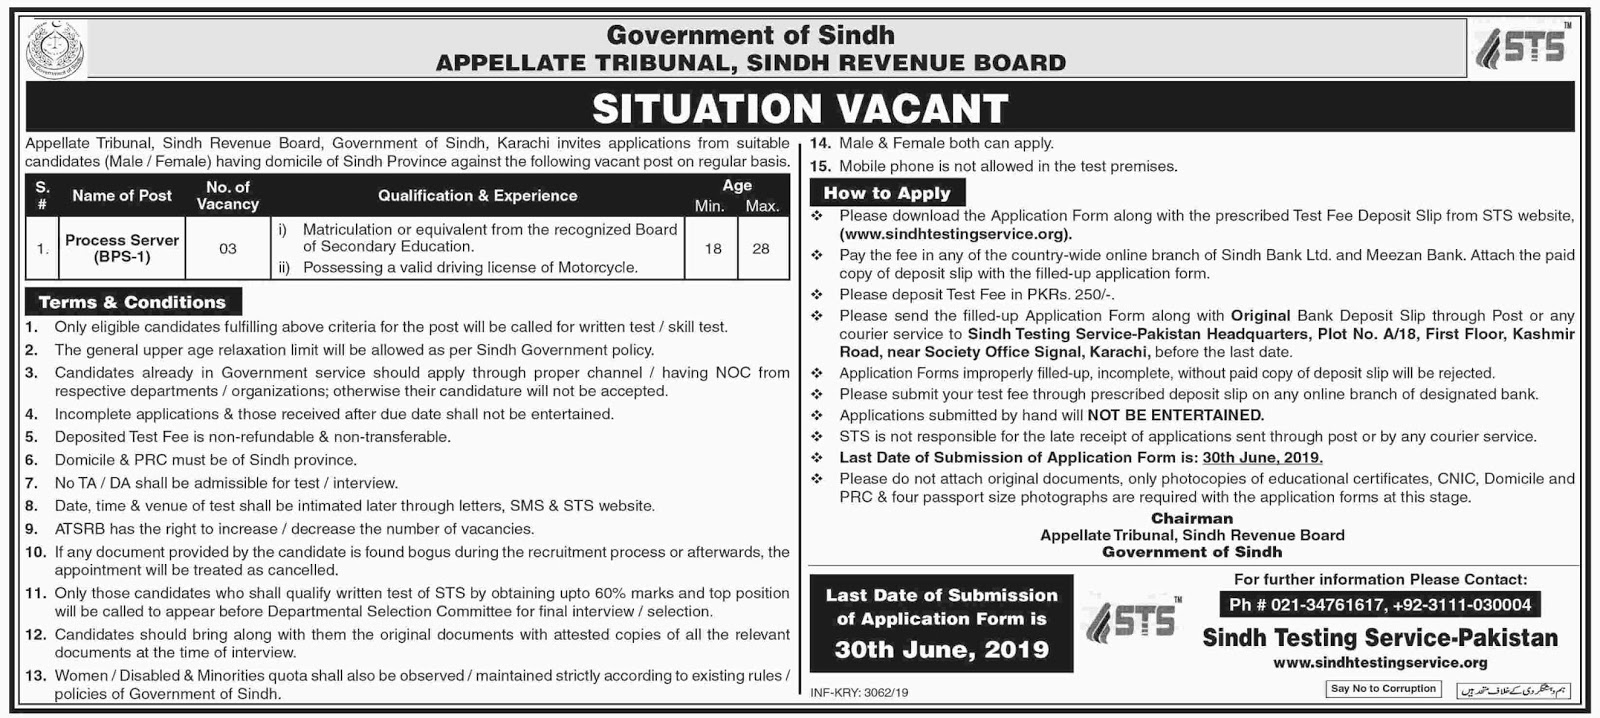 Appellate Tribunal Sindh Revenue Board Process Server Jobs June 2019